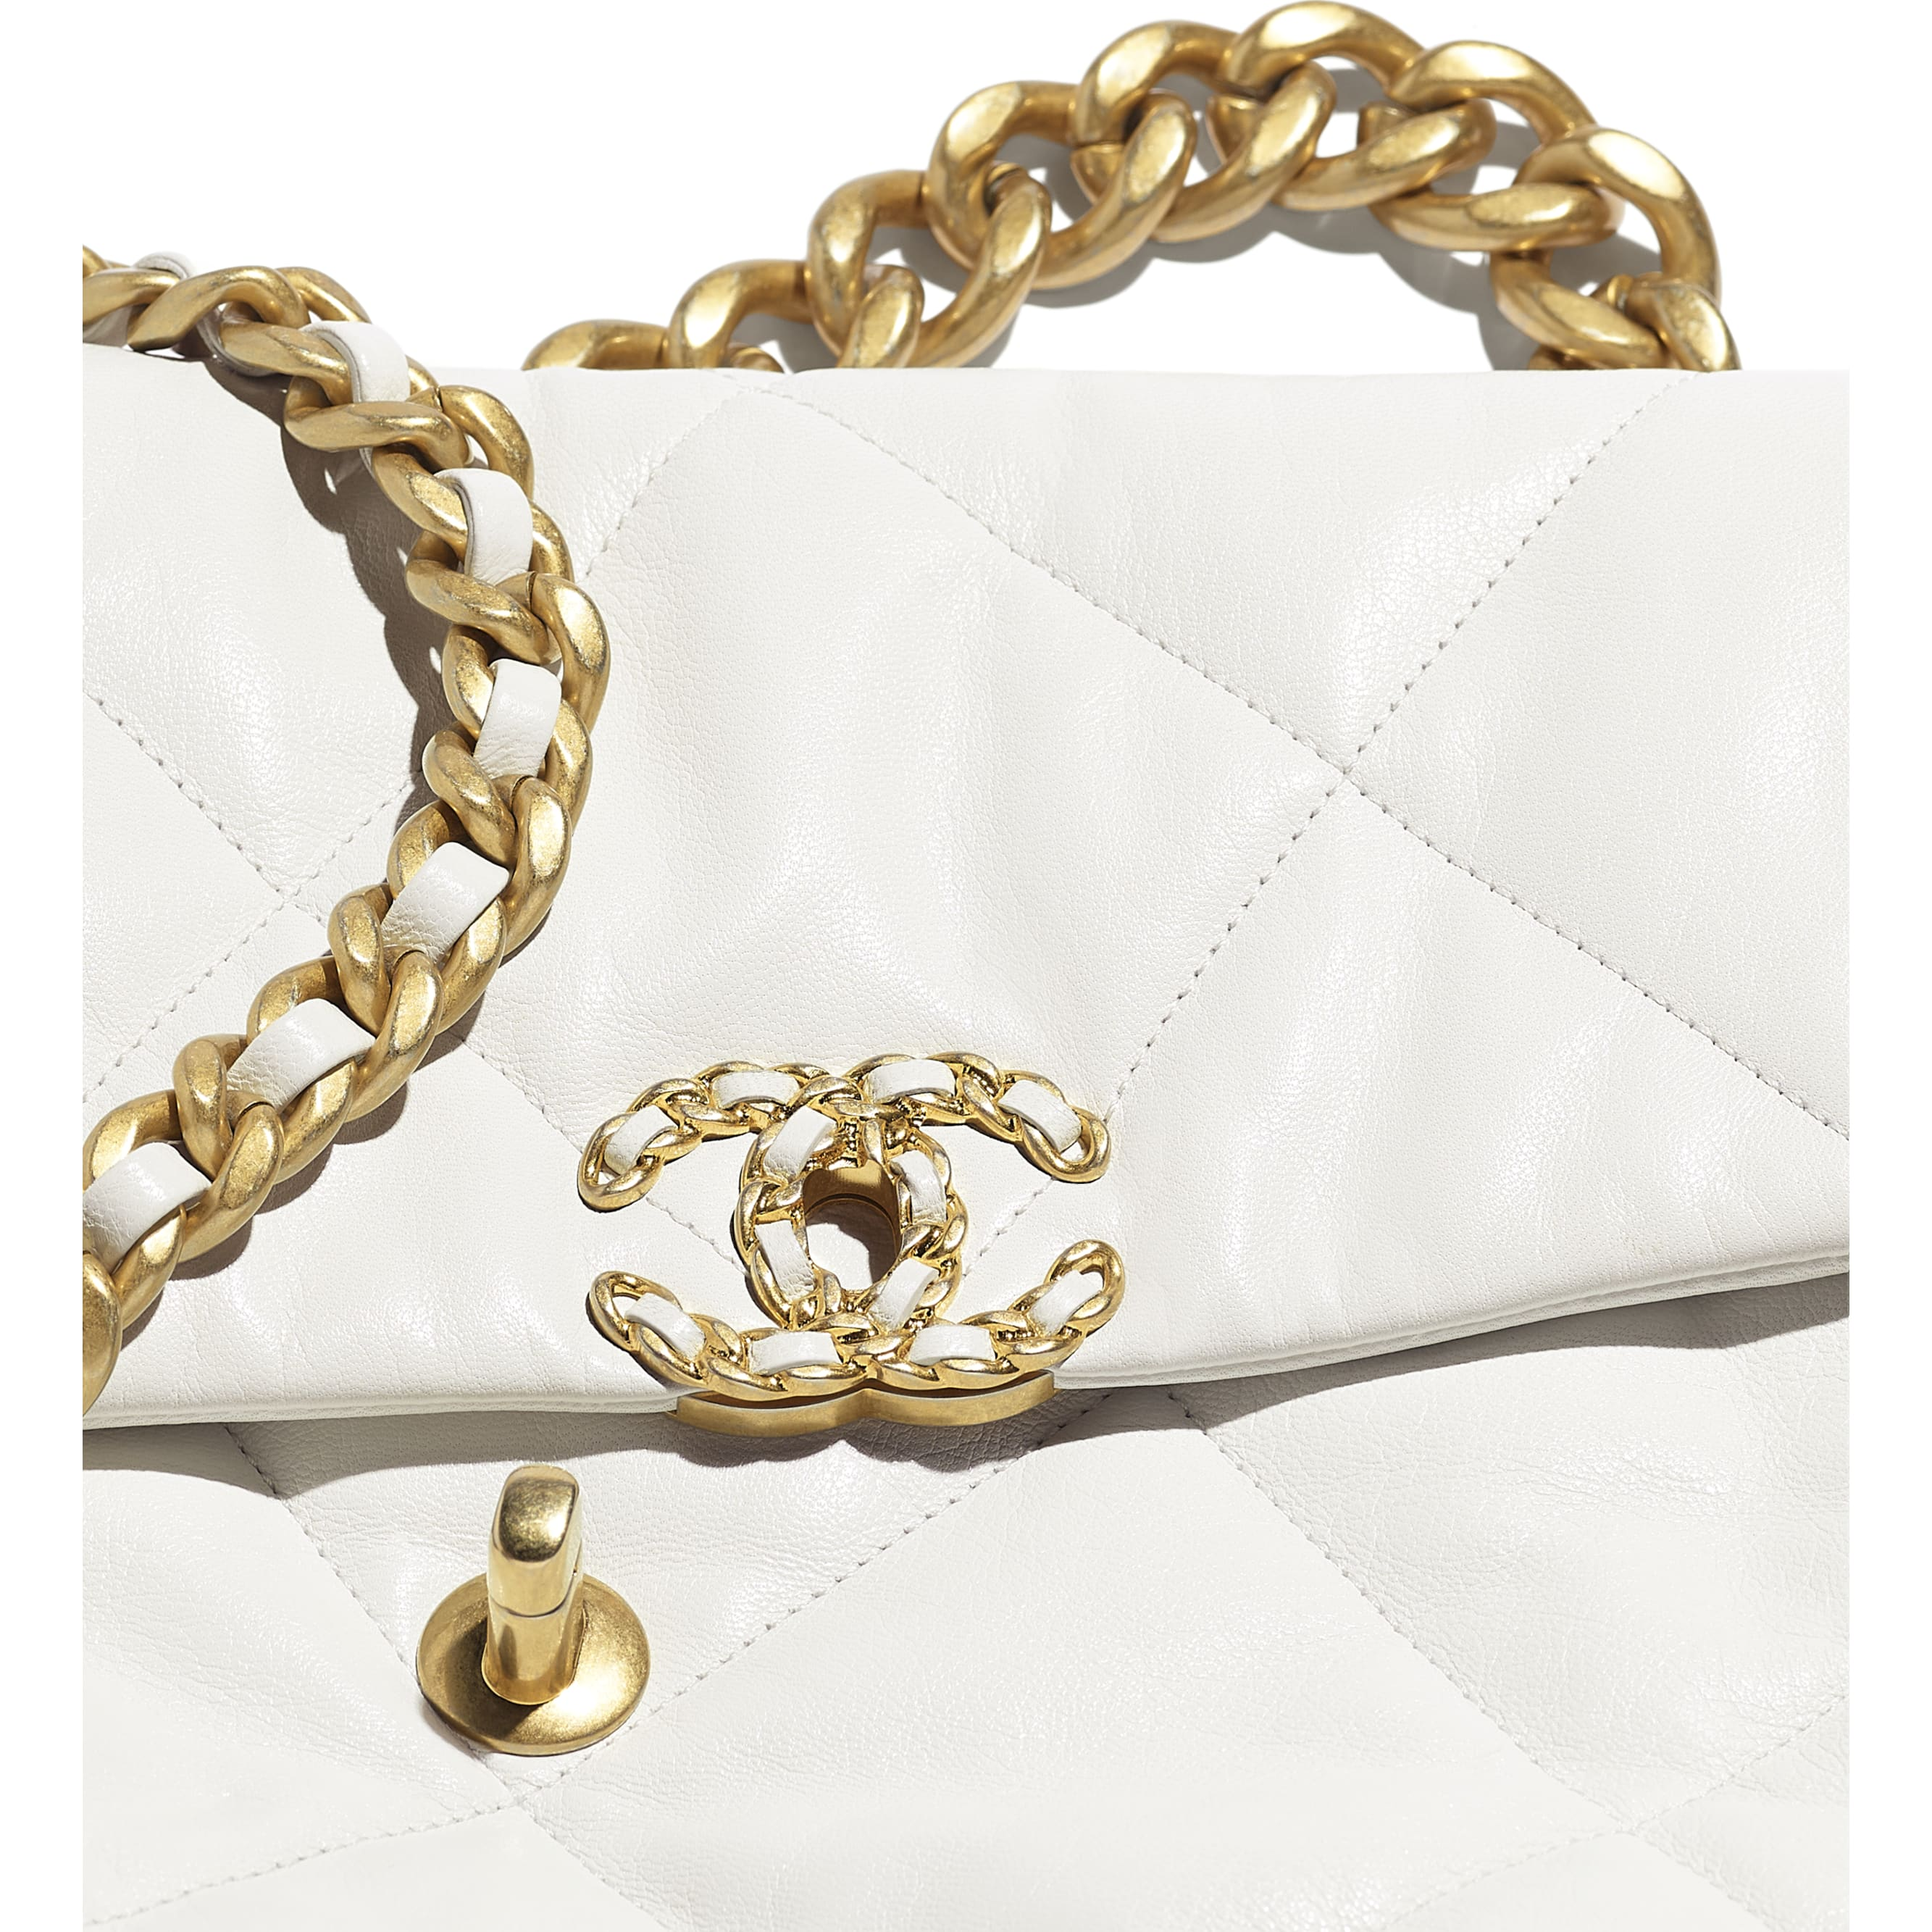 CHANEL 19 Large Flap Bag - White - Goatskin, Gold-Tone, Silver-Tone & Ruthenium-Finish Metal - Extra view - see standard sized version